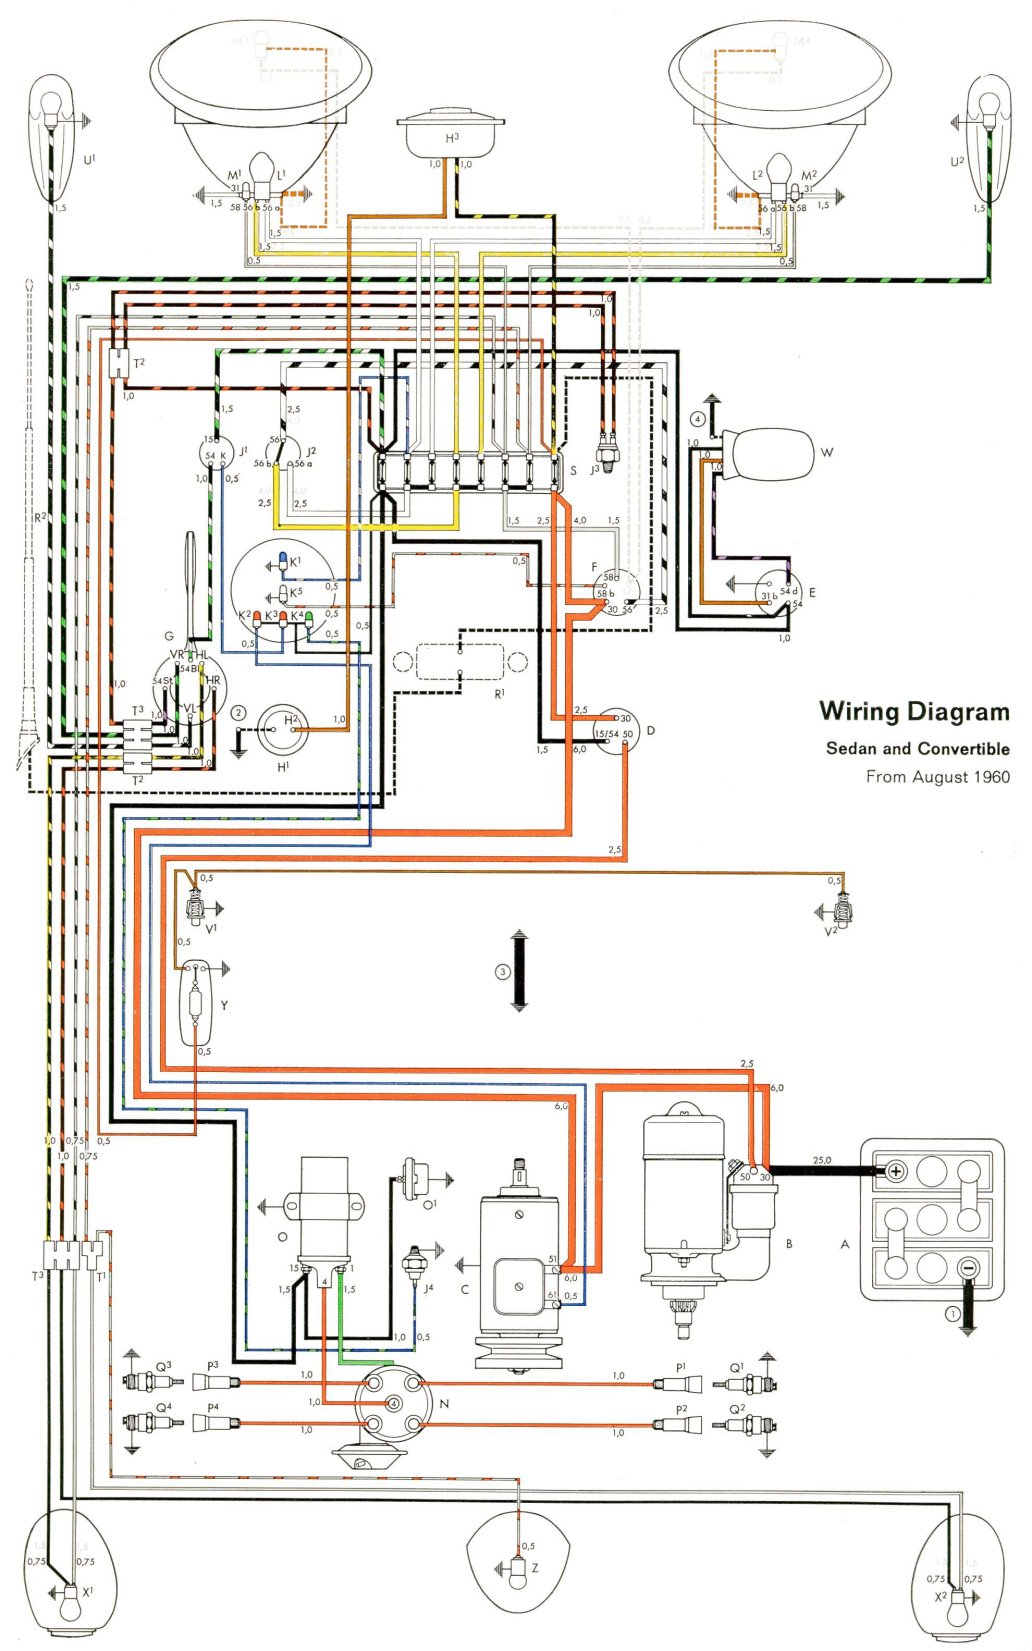 bug_61 1961 beetle wiring diagram thegoldenbug com 1965 vw beetle wiring diagram at nearapp.co